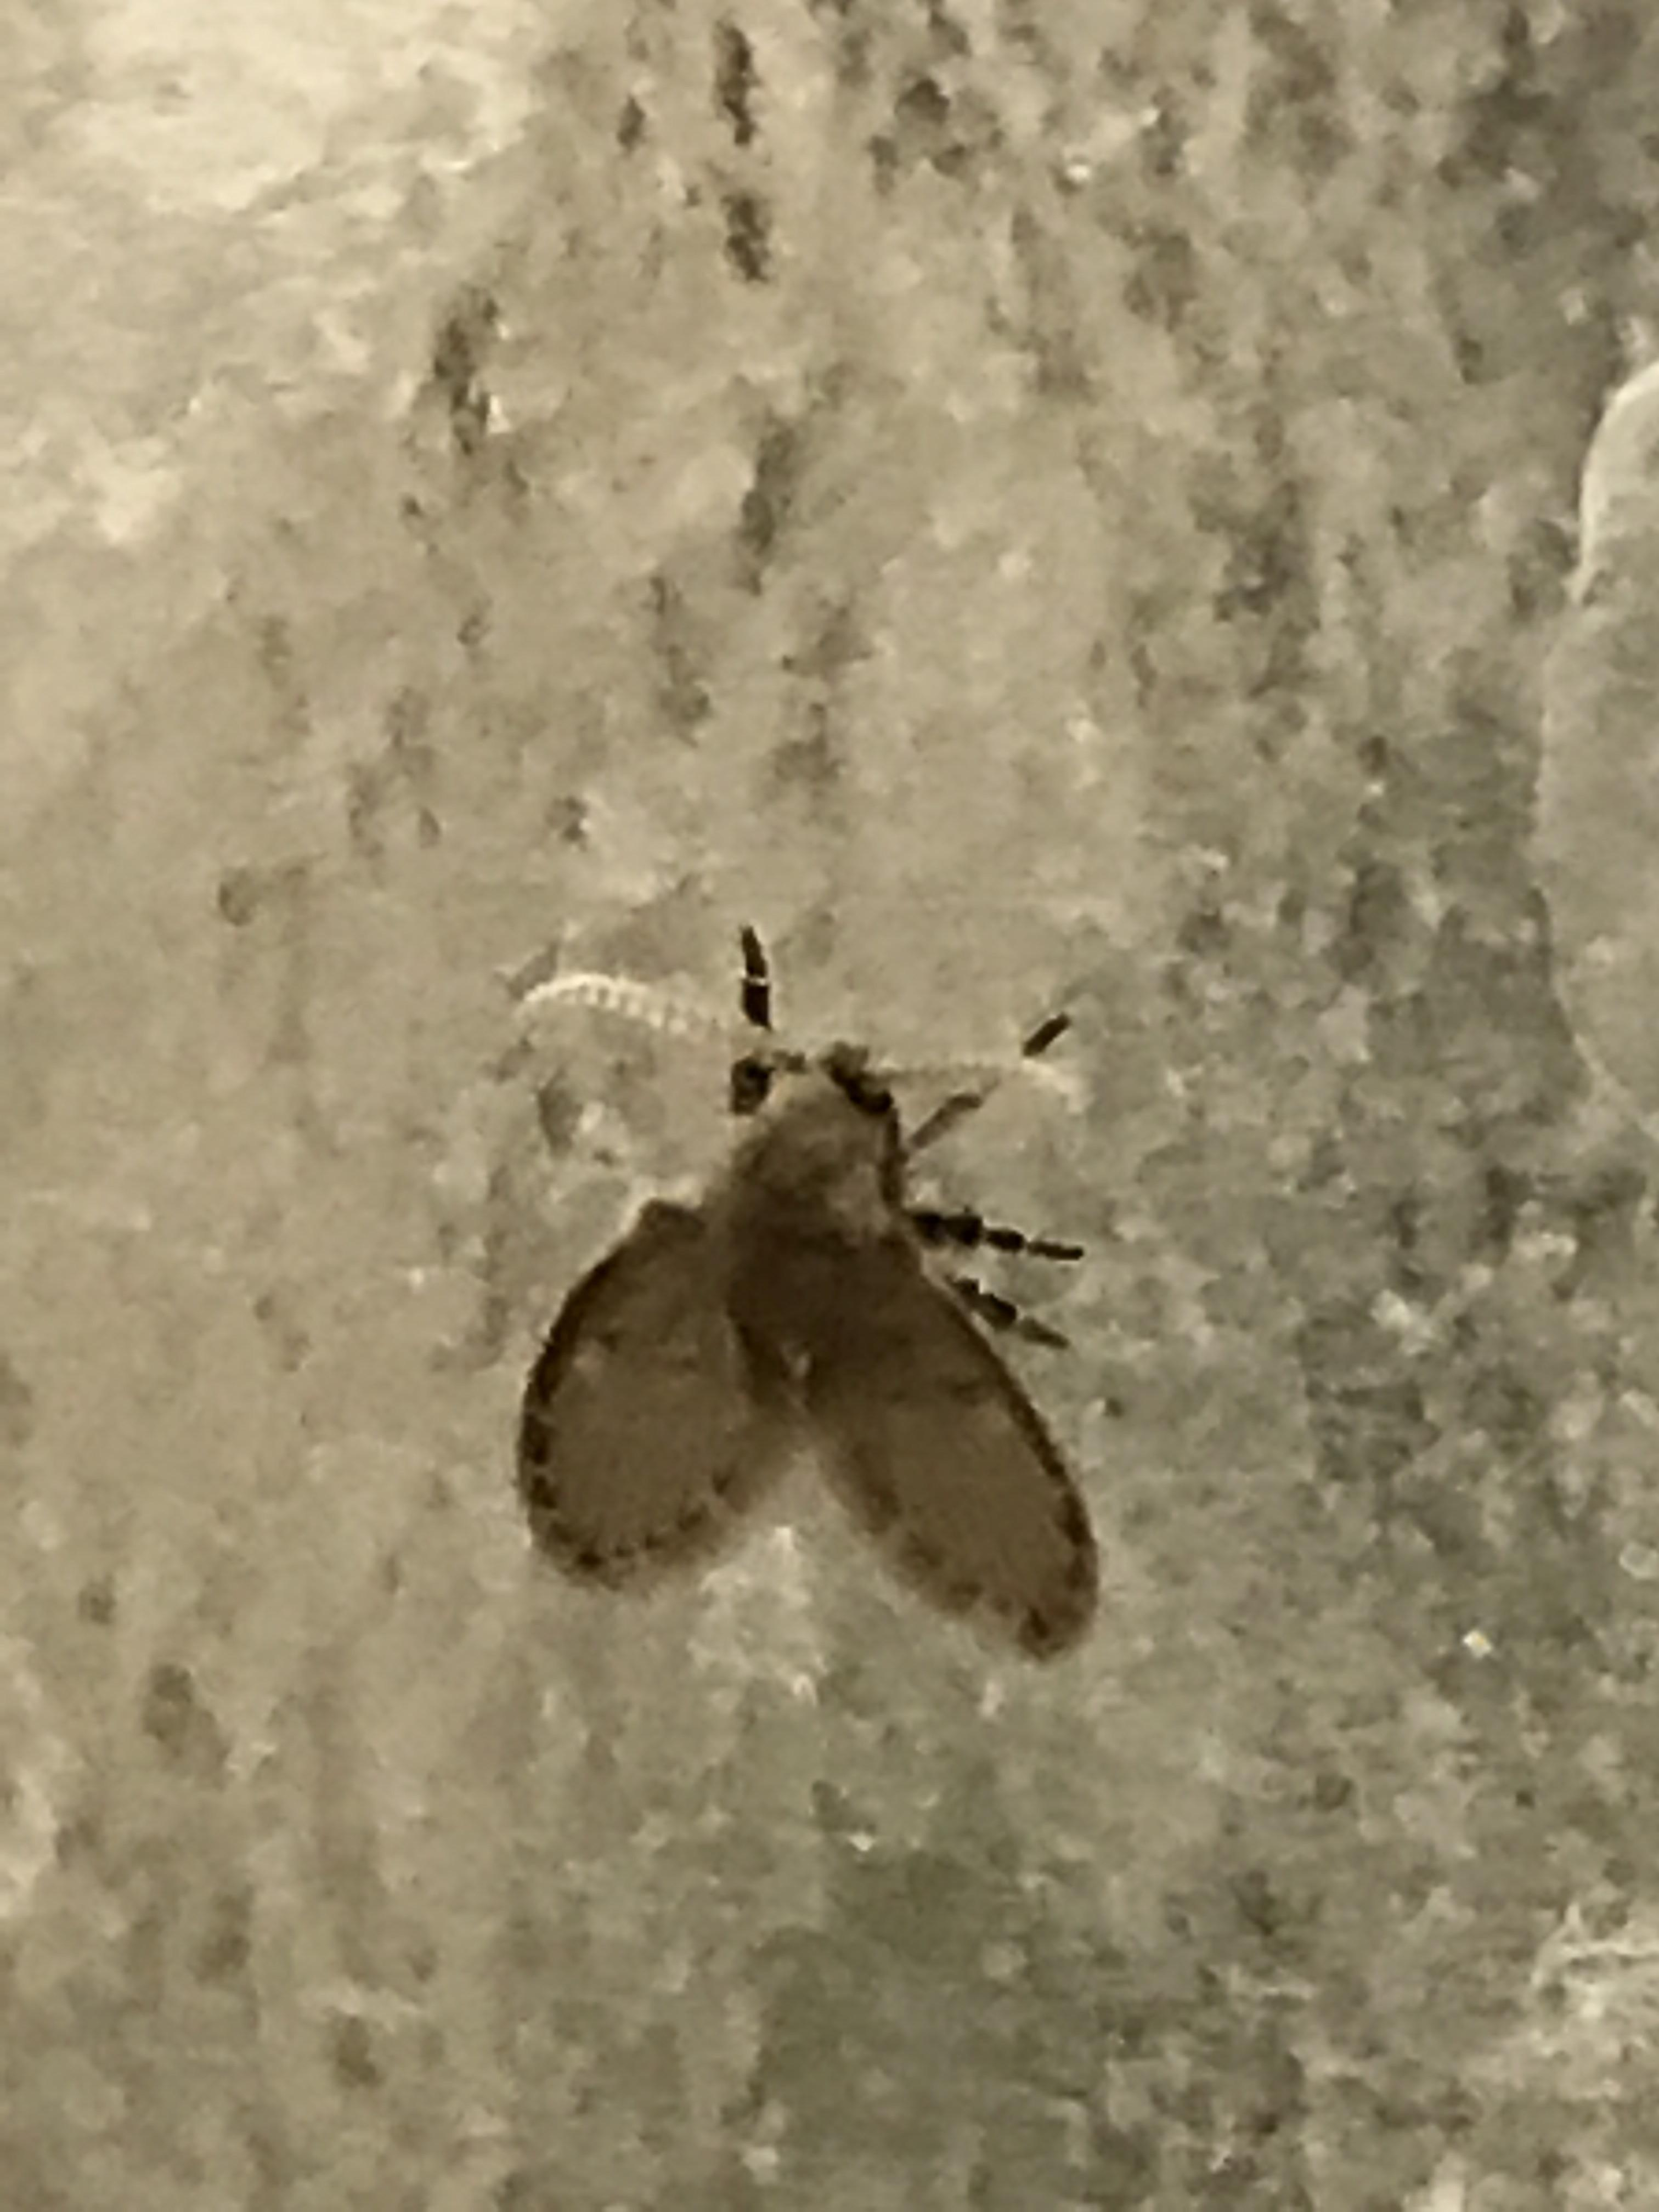 These Flys Show Up In My Bathroom No Matter How Clean It Is Only My Bathroom And They Are About The Size Of The Diameter Of A Pencil Eraser Whatsthisbug